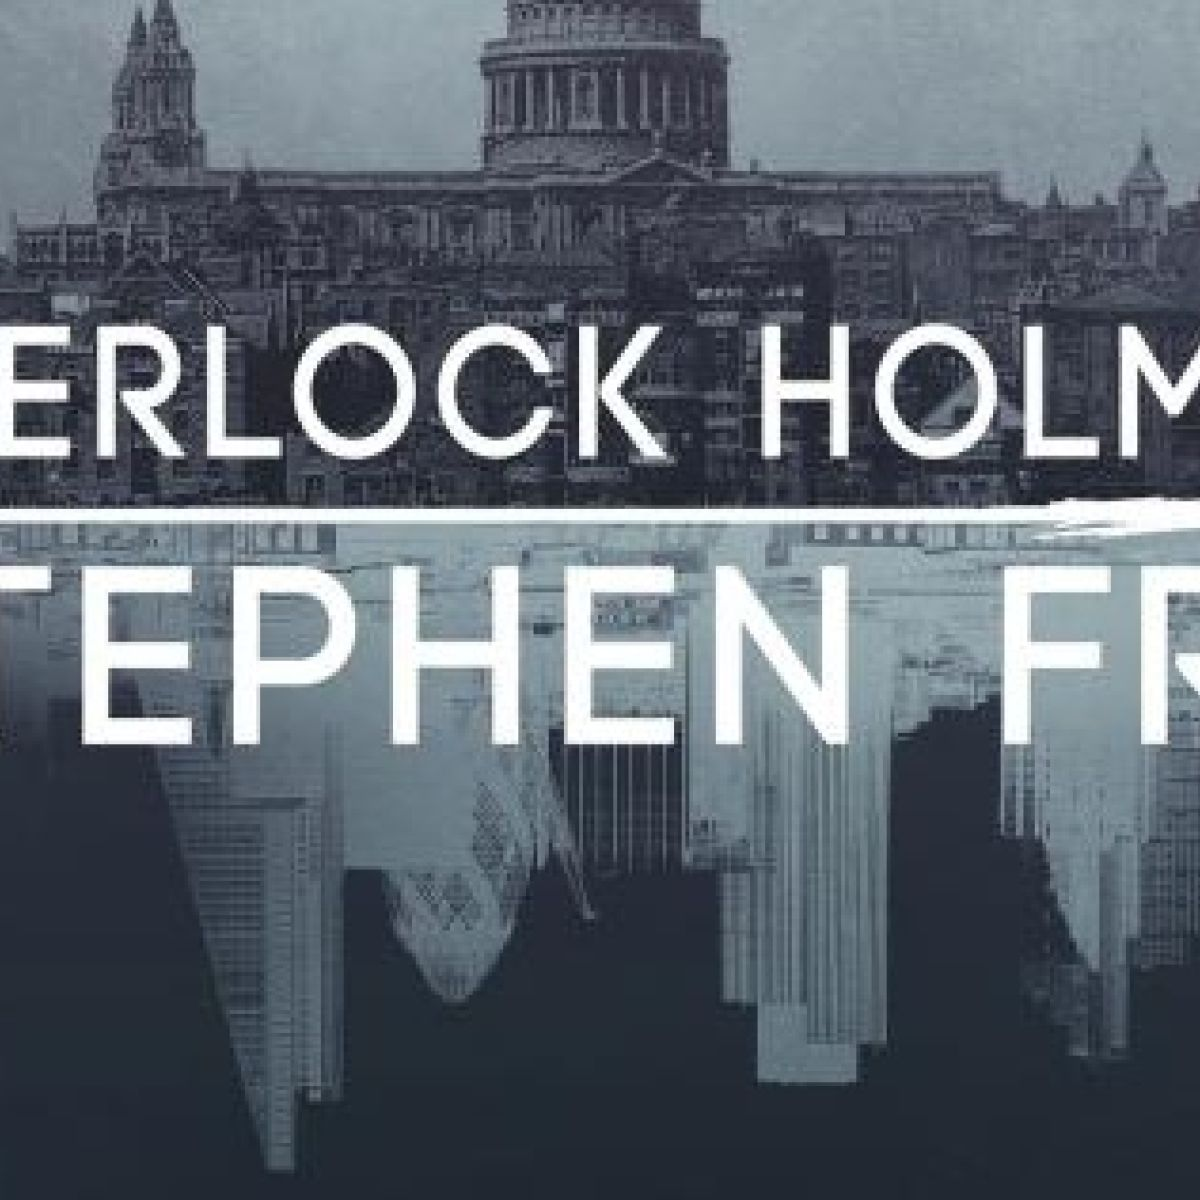 Audible Account Sharing audible offers free sherlock holmes audio books to new users